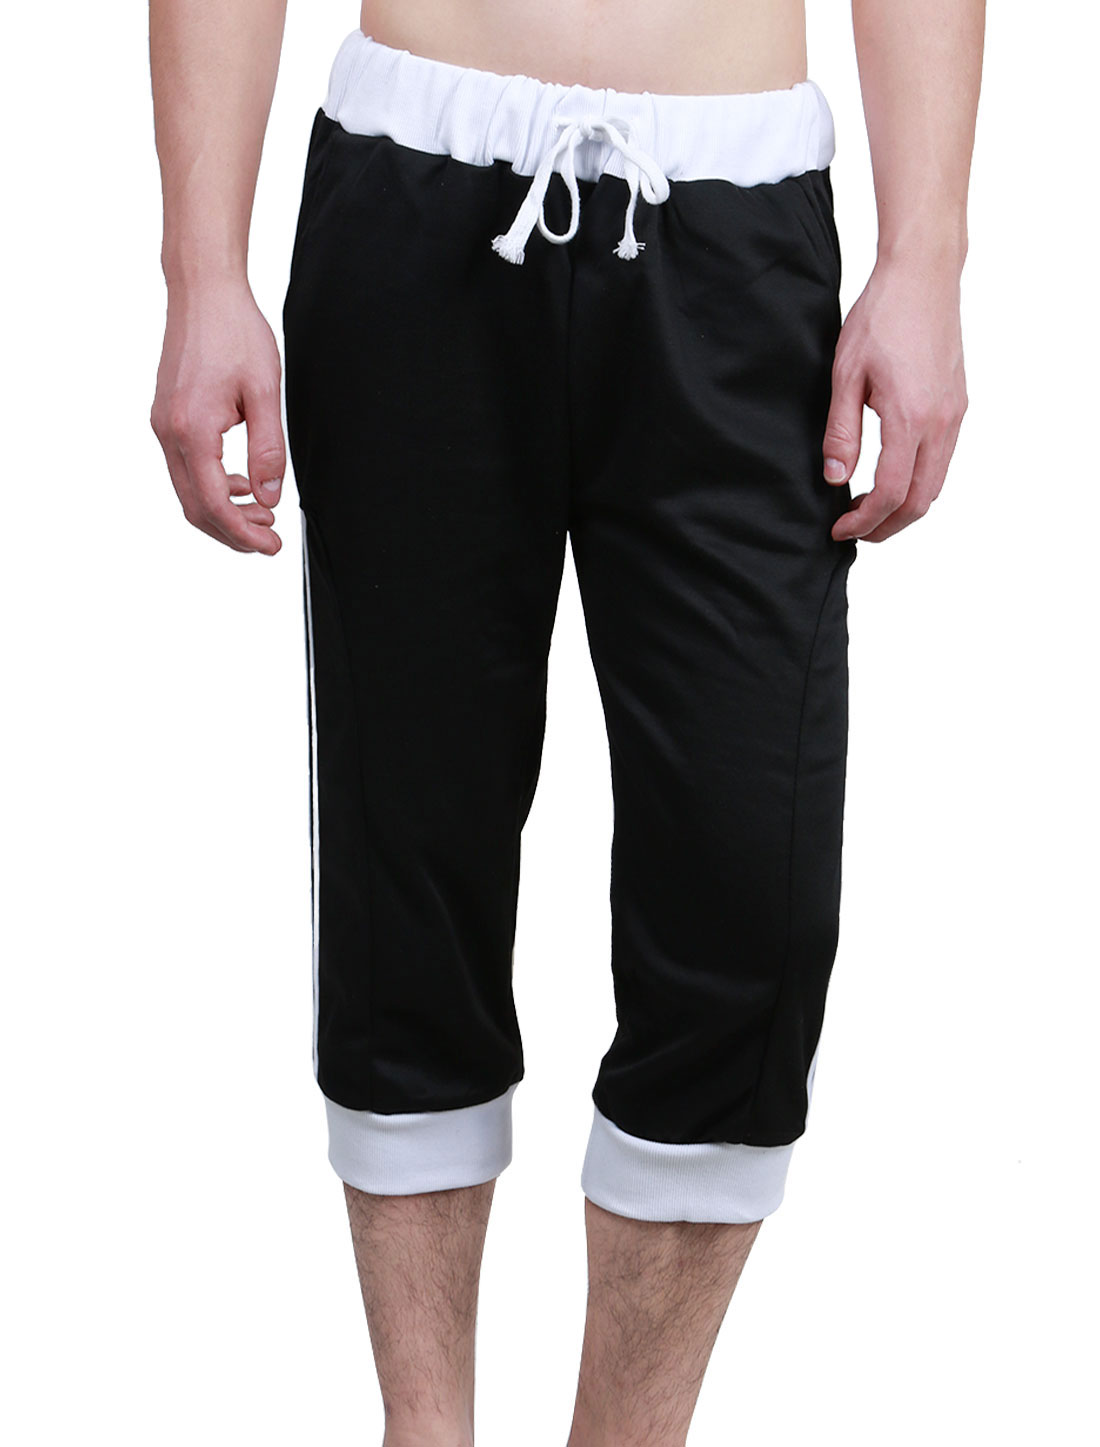 Men Elastic Waist Pockets Leisure Capris Pants Black White W36